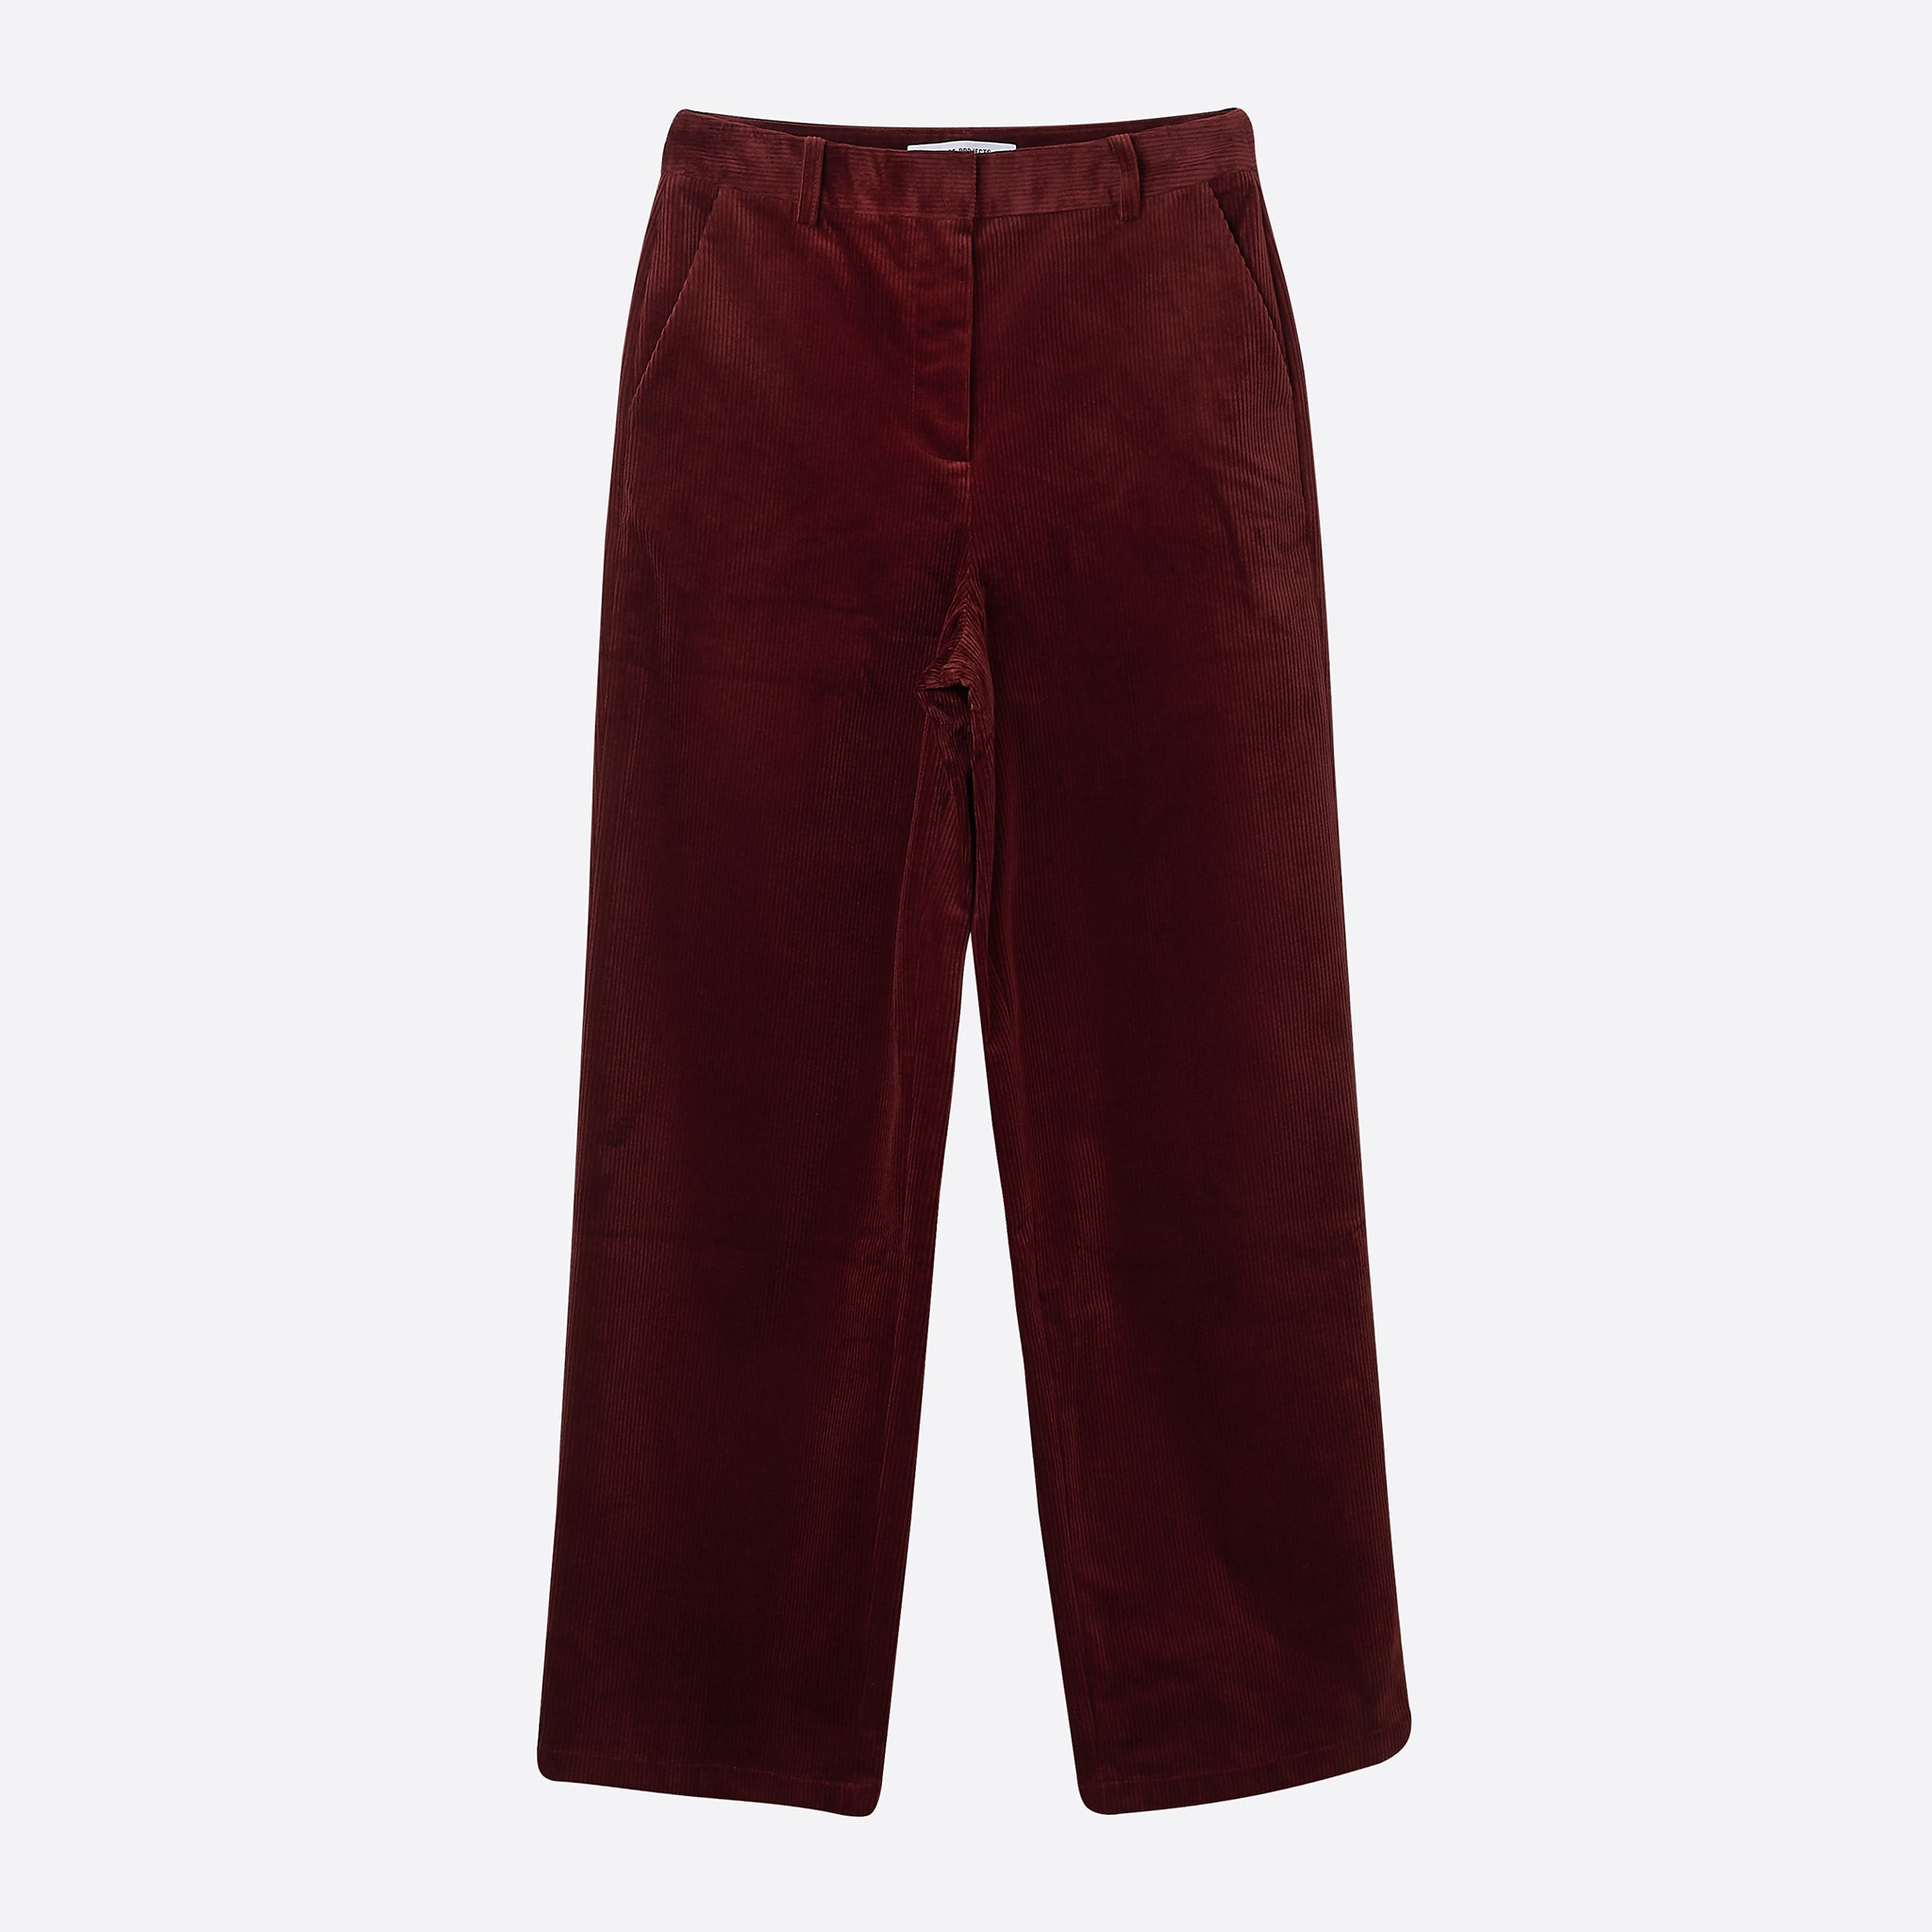 Norse Projects Jelena Cord in Iron Oxide Red